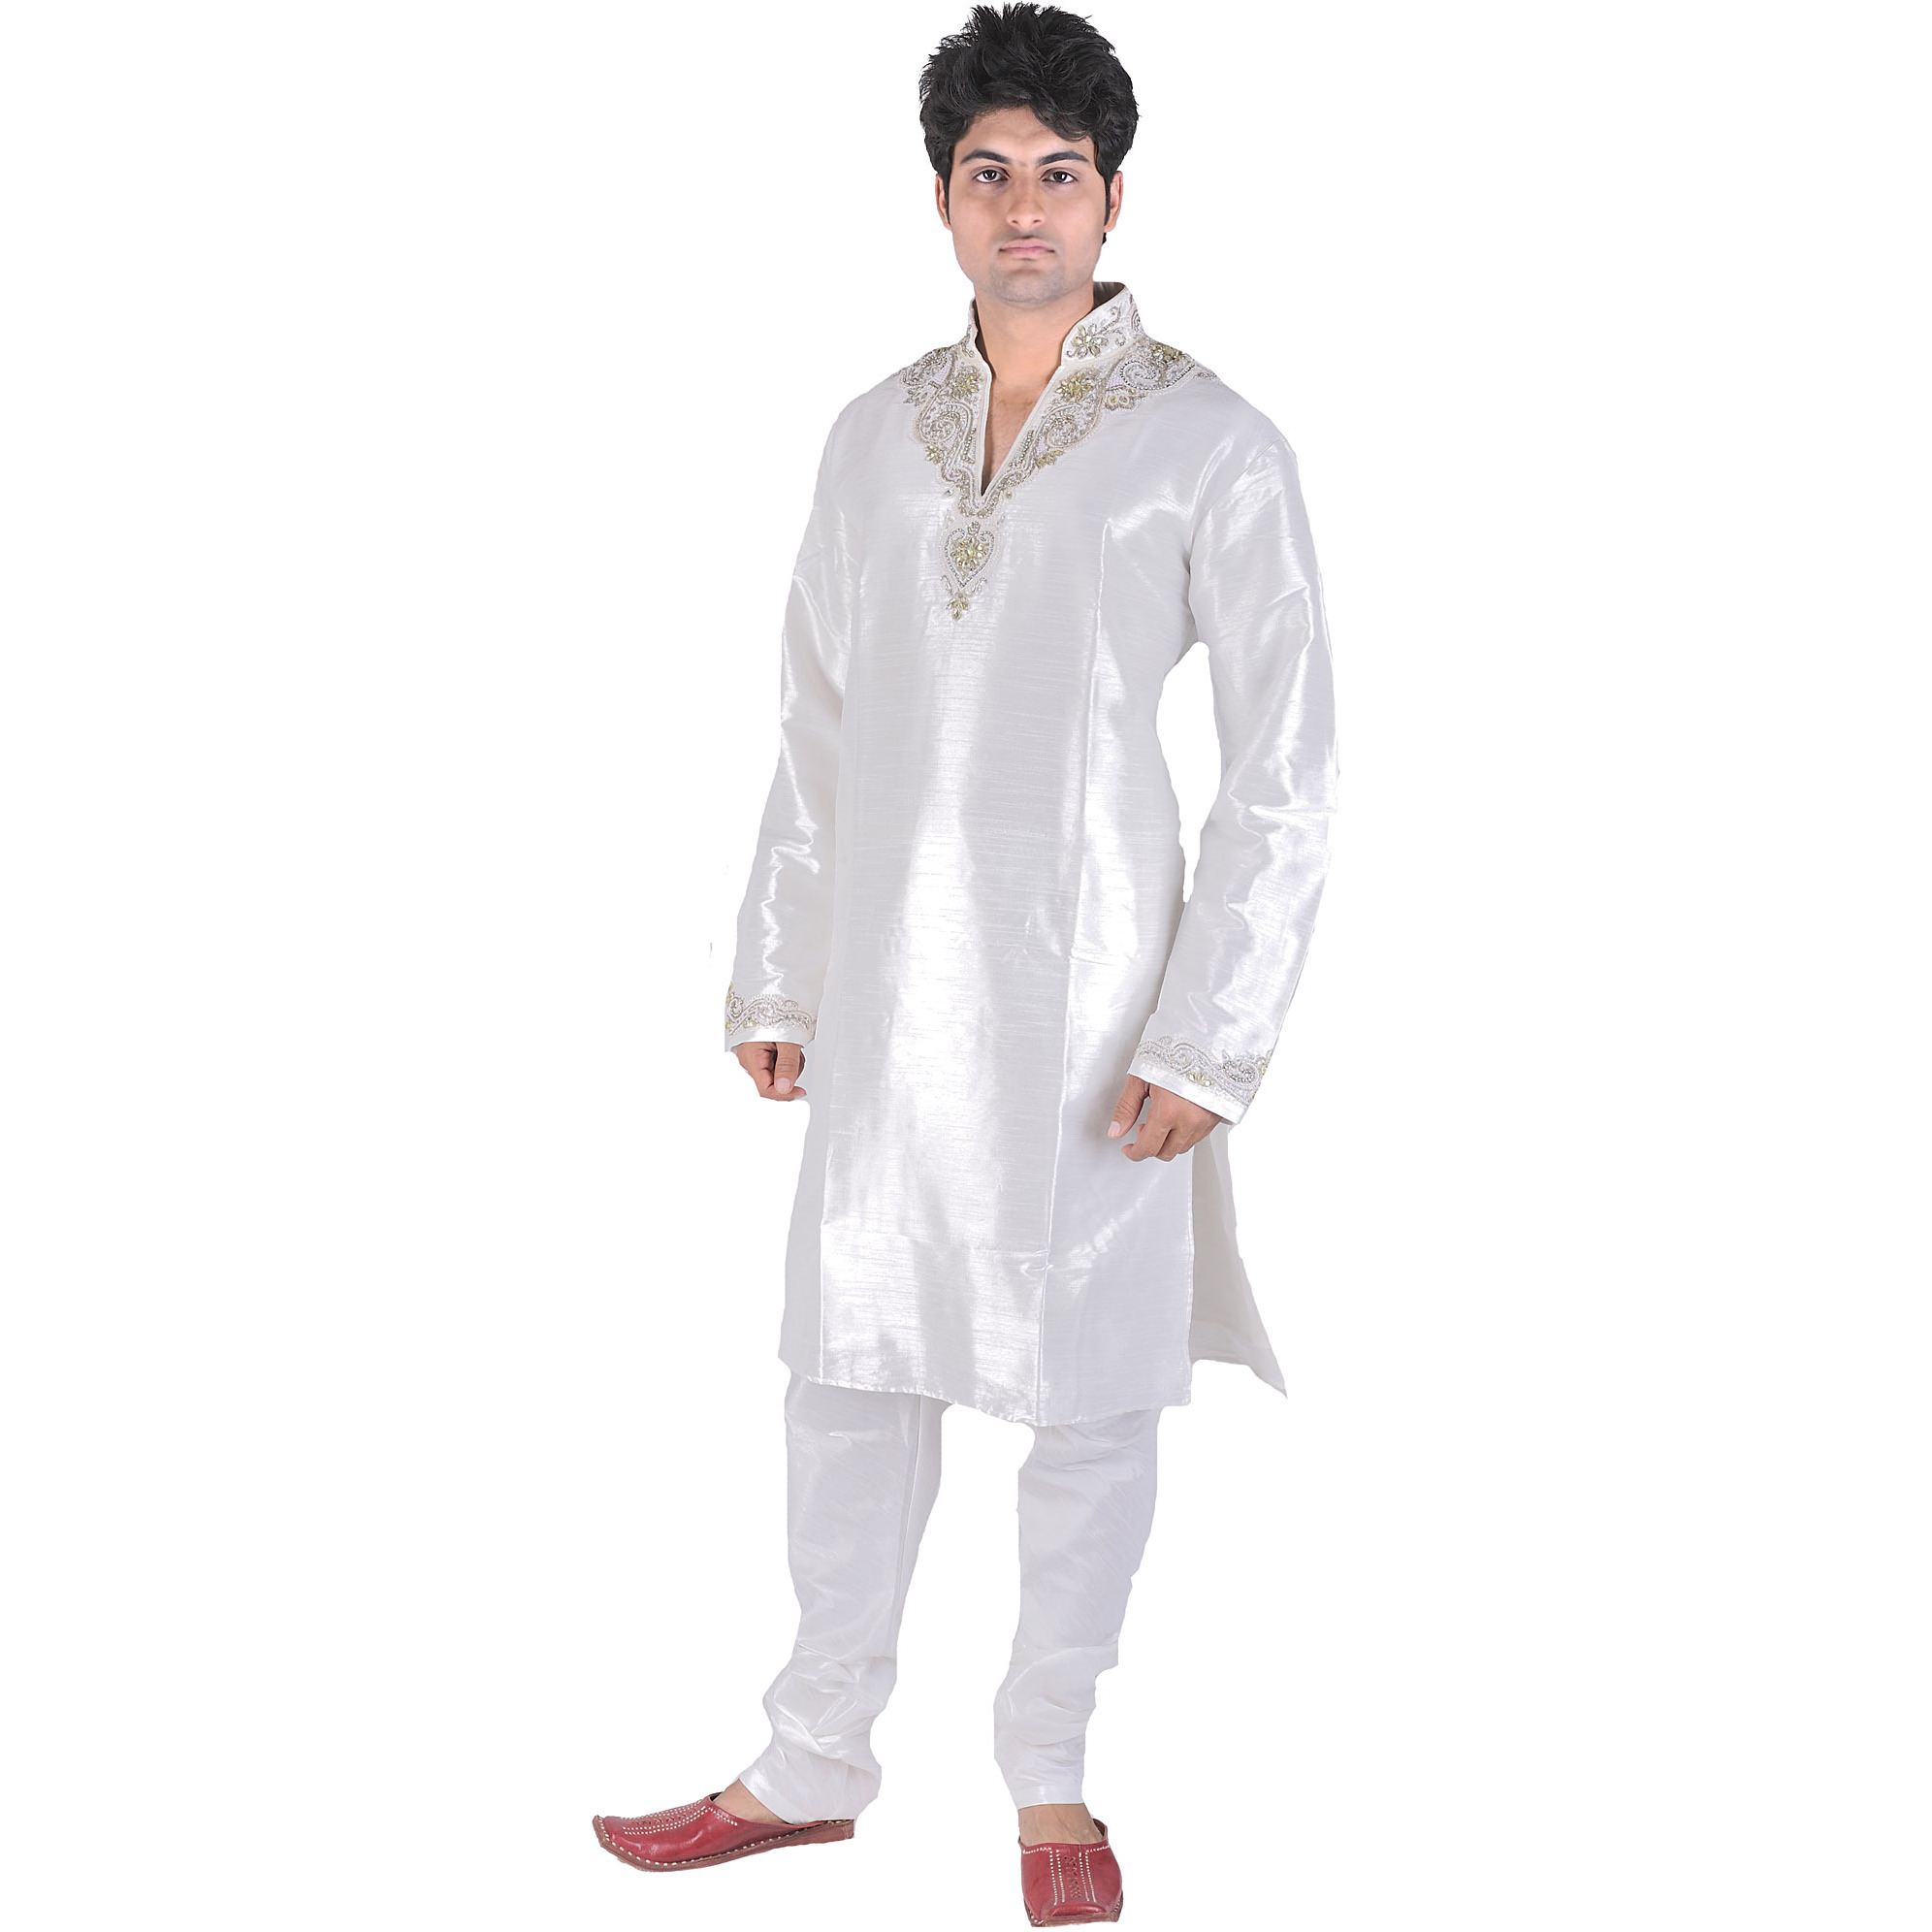 White Wedding Kurta Pajama with Beads Embroidered on Neck